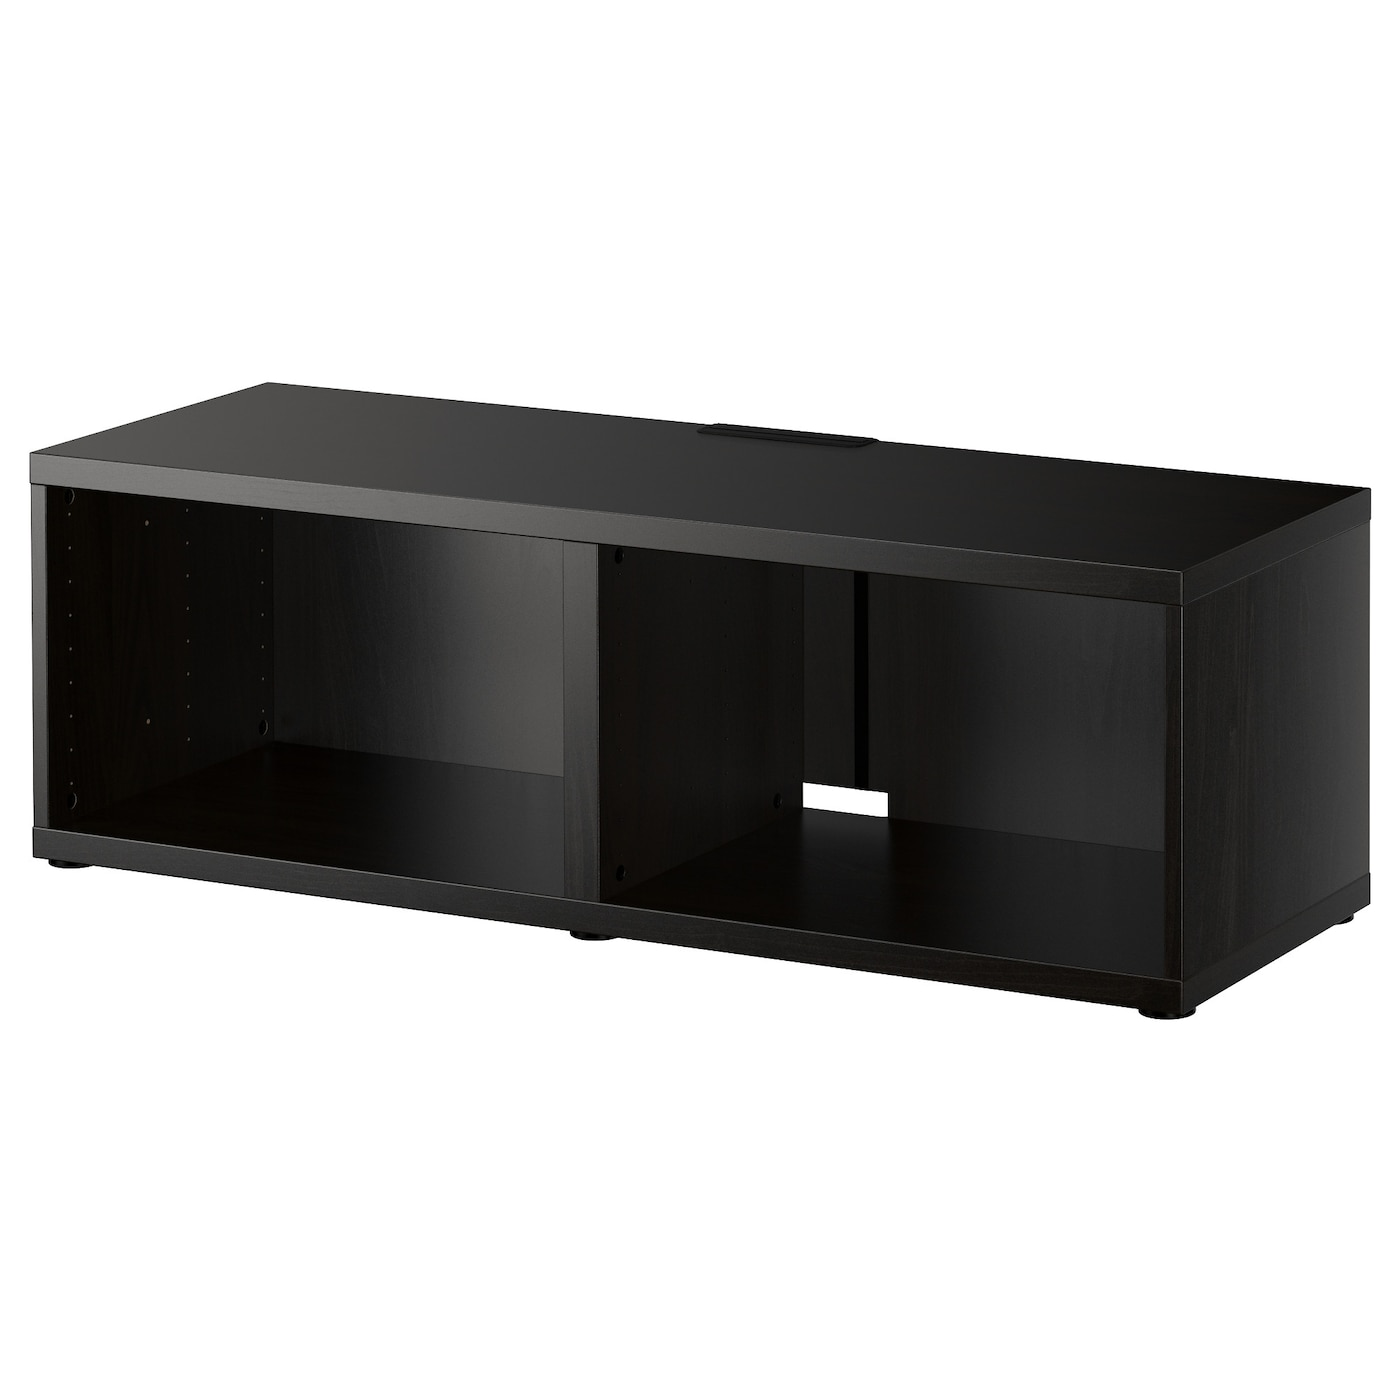 Best Tv Bench Black Brown 120x40x38 Cm Ikea